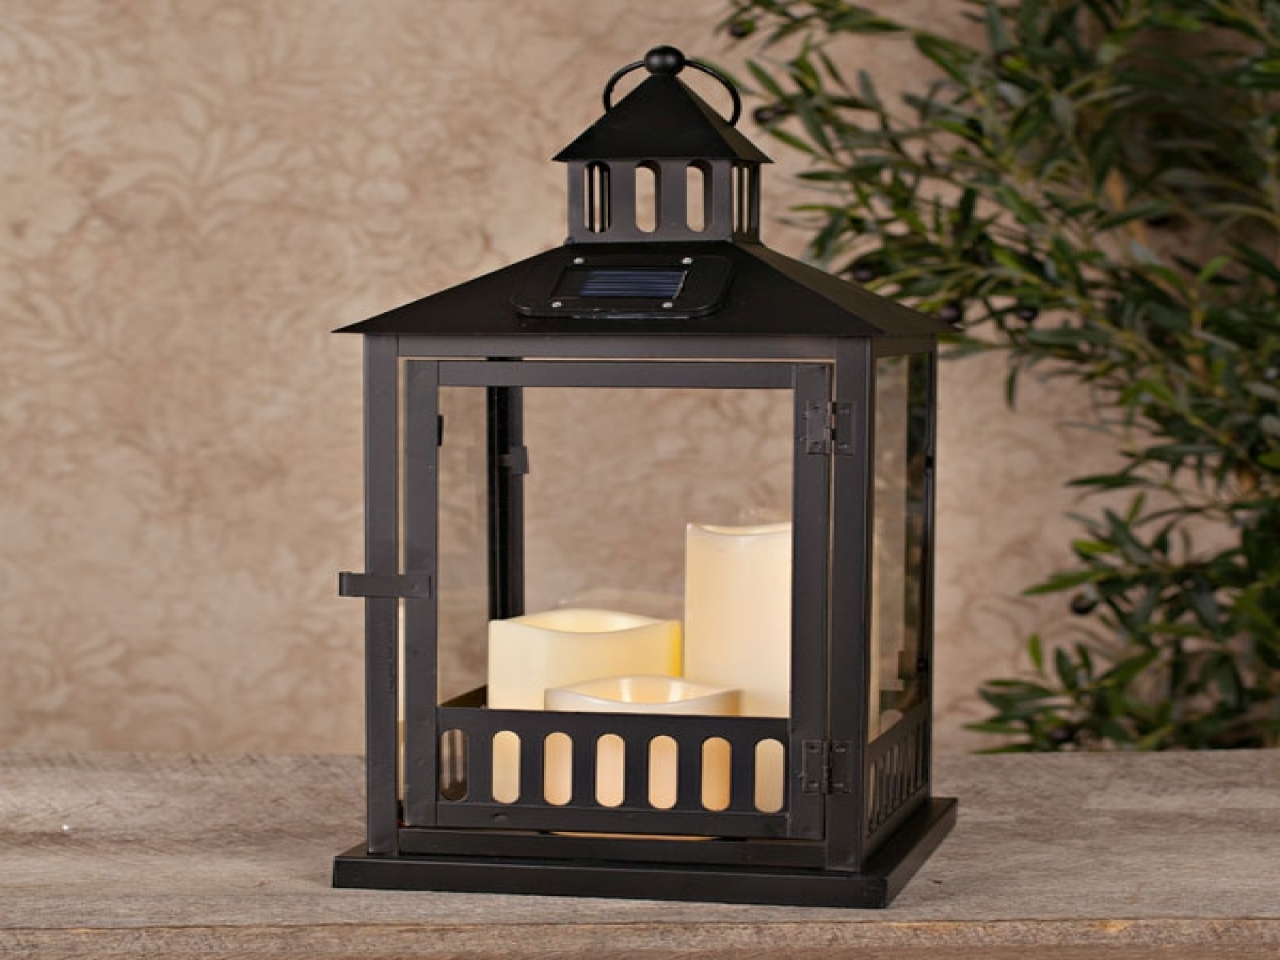 Most Recent Solar Post Lanterns Outdoor, Large Outdoor Solar Lanterns Solar With Large Outdoor Decorative Lanterns (View 16 of 20)